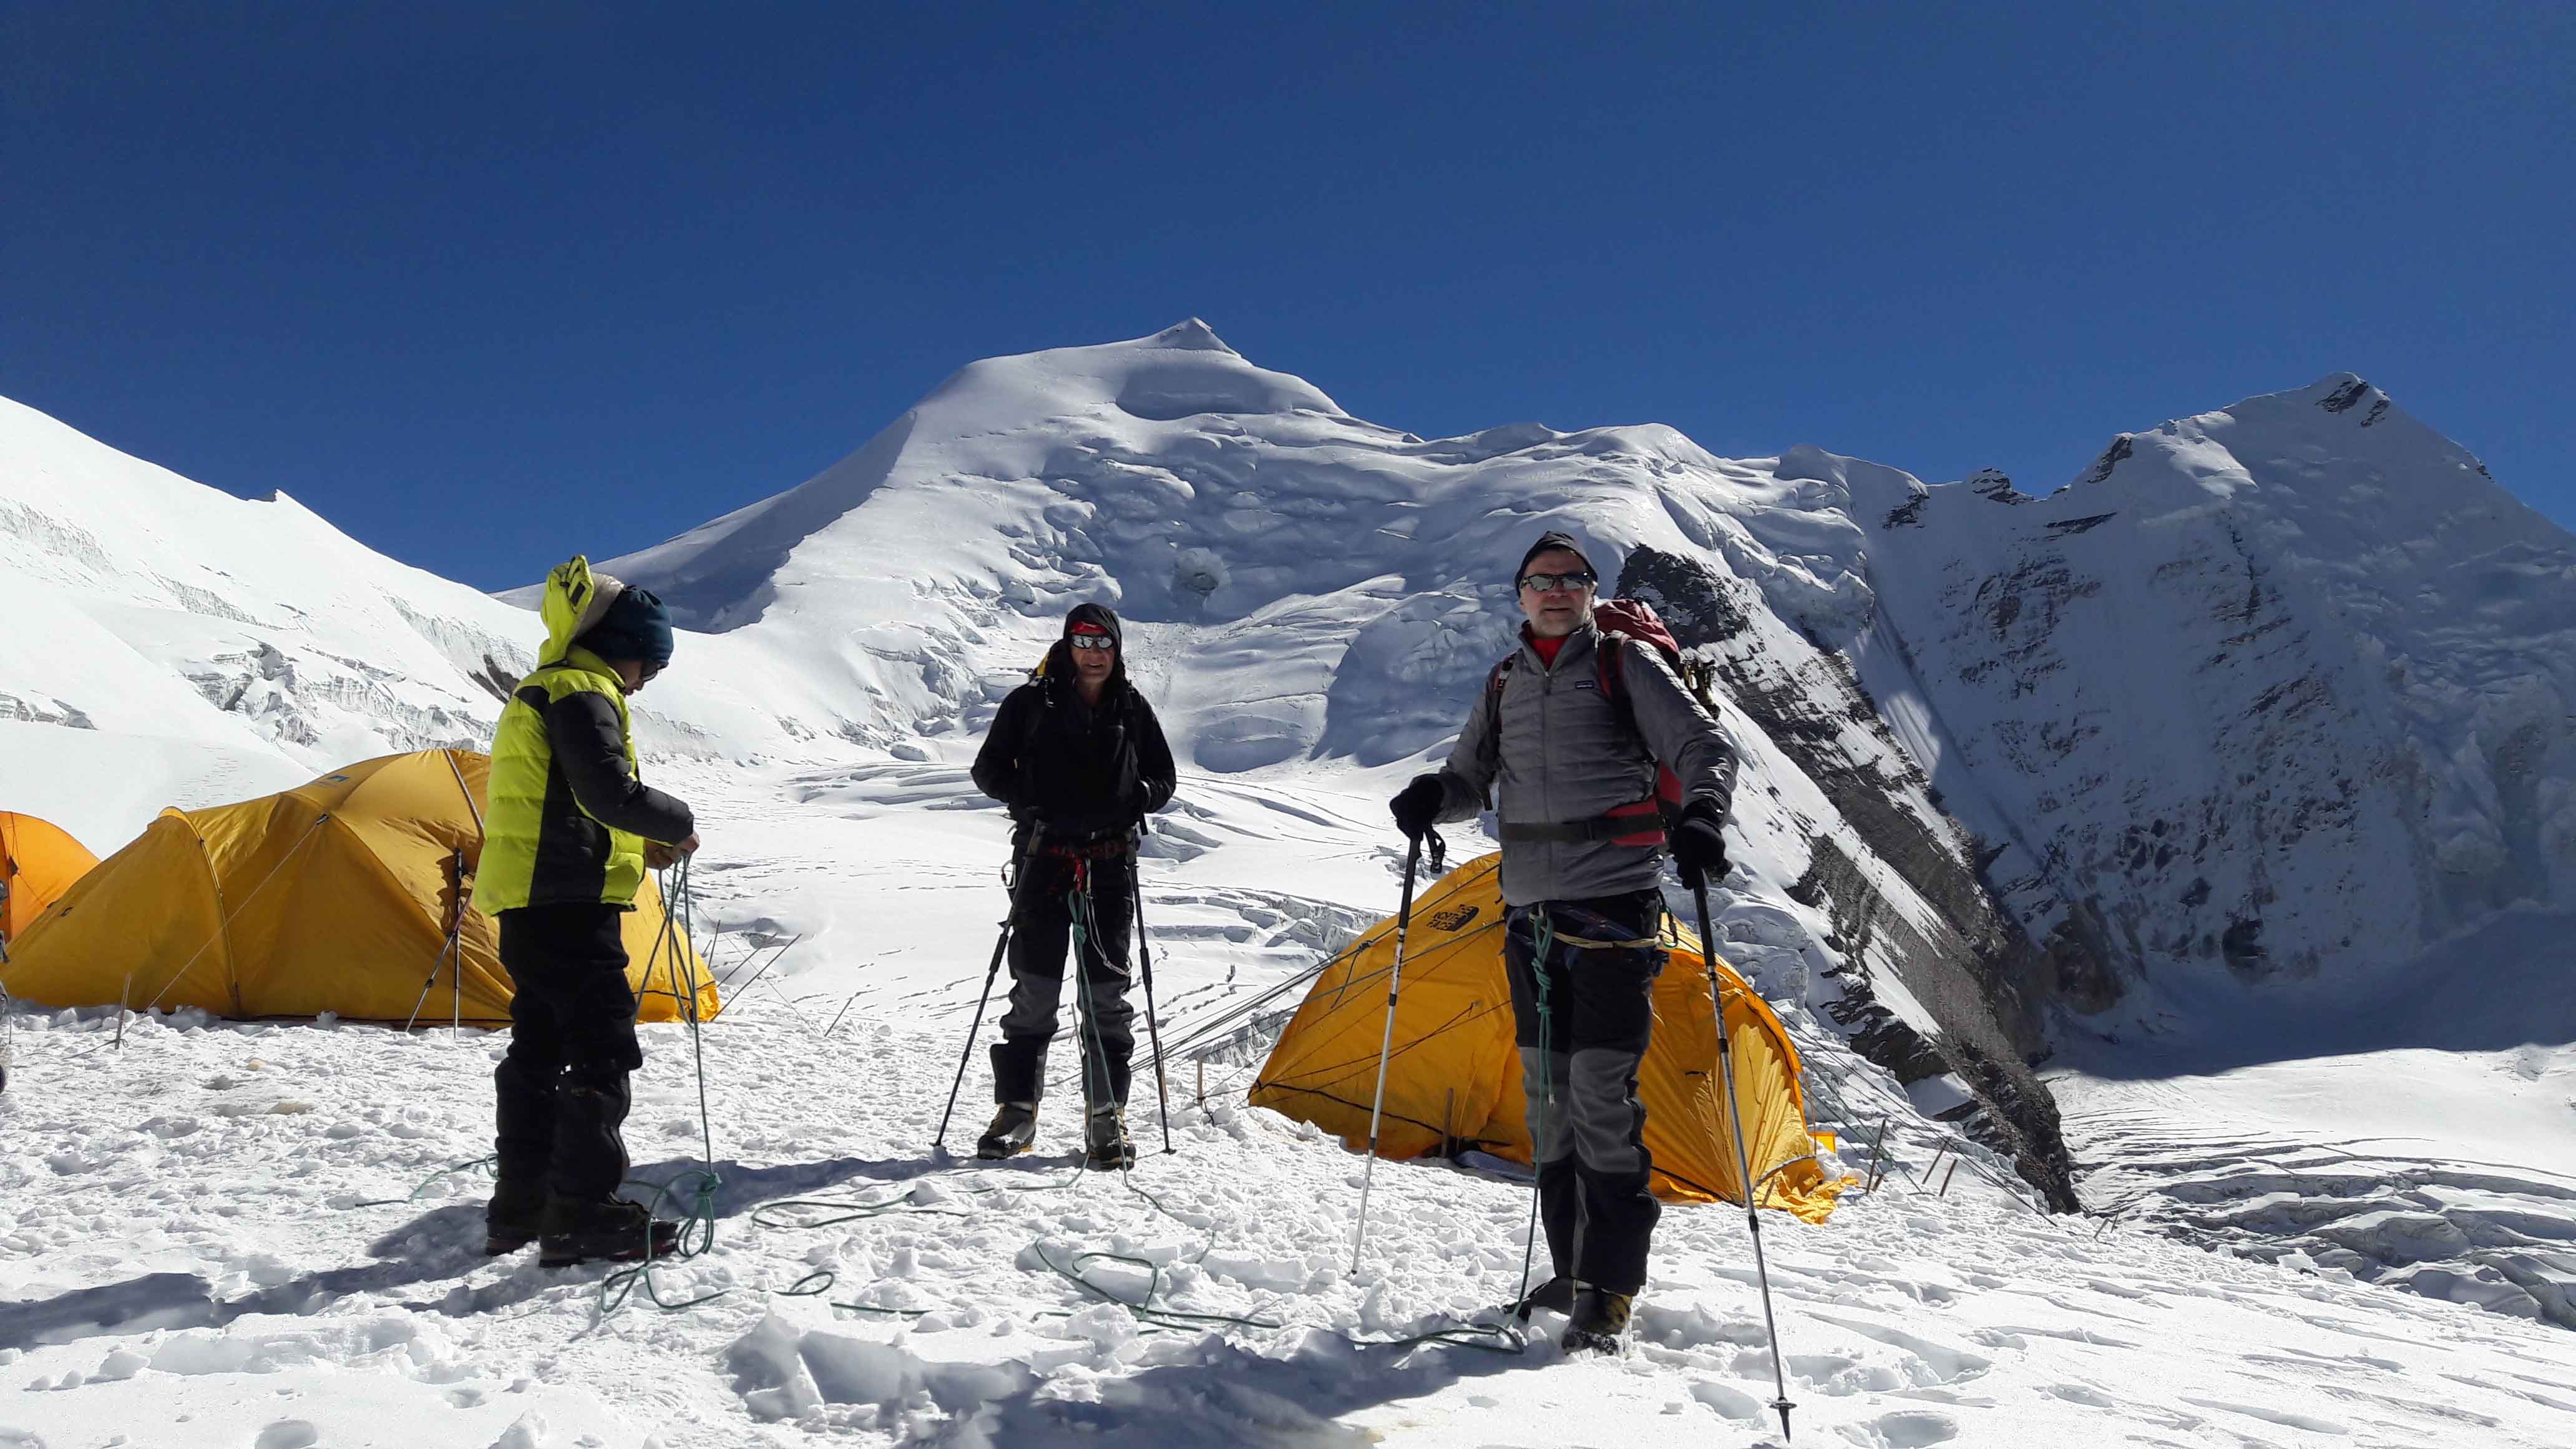 Mount Himlung Himal Expedition in Nepal